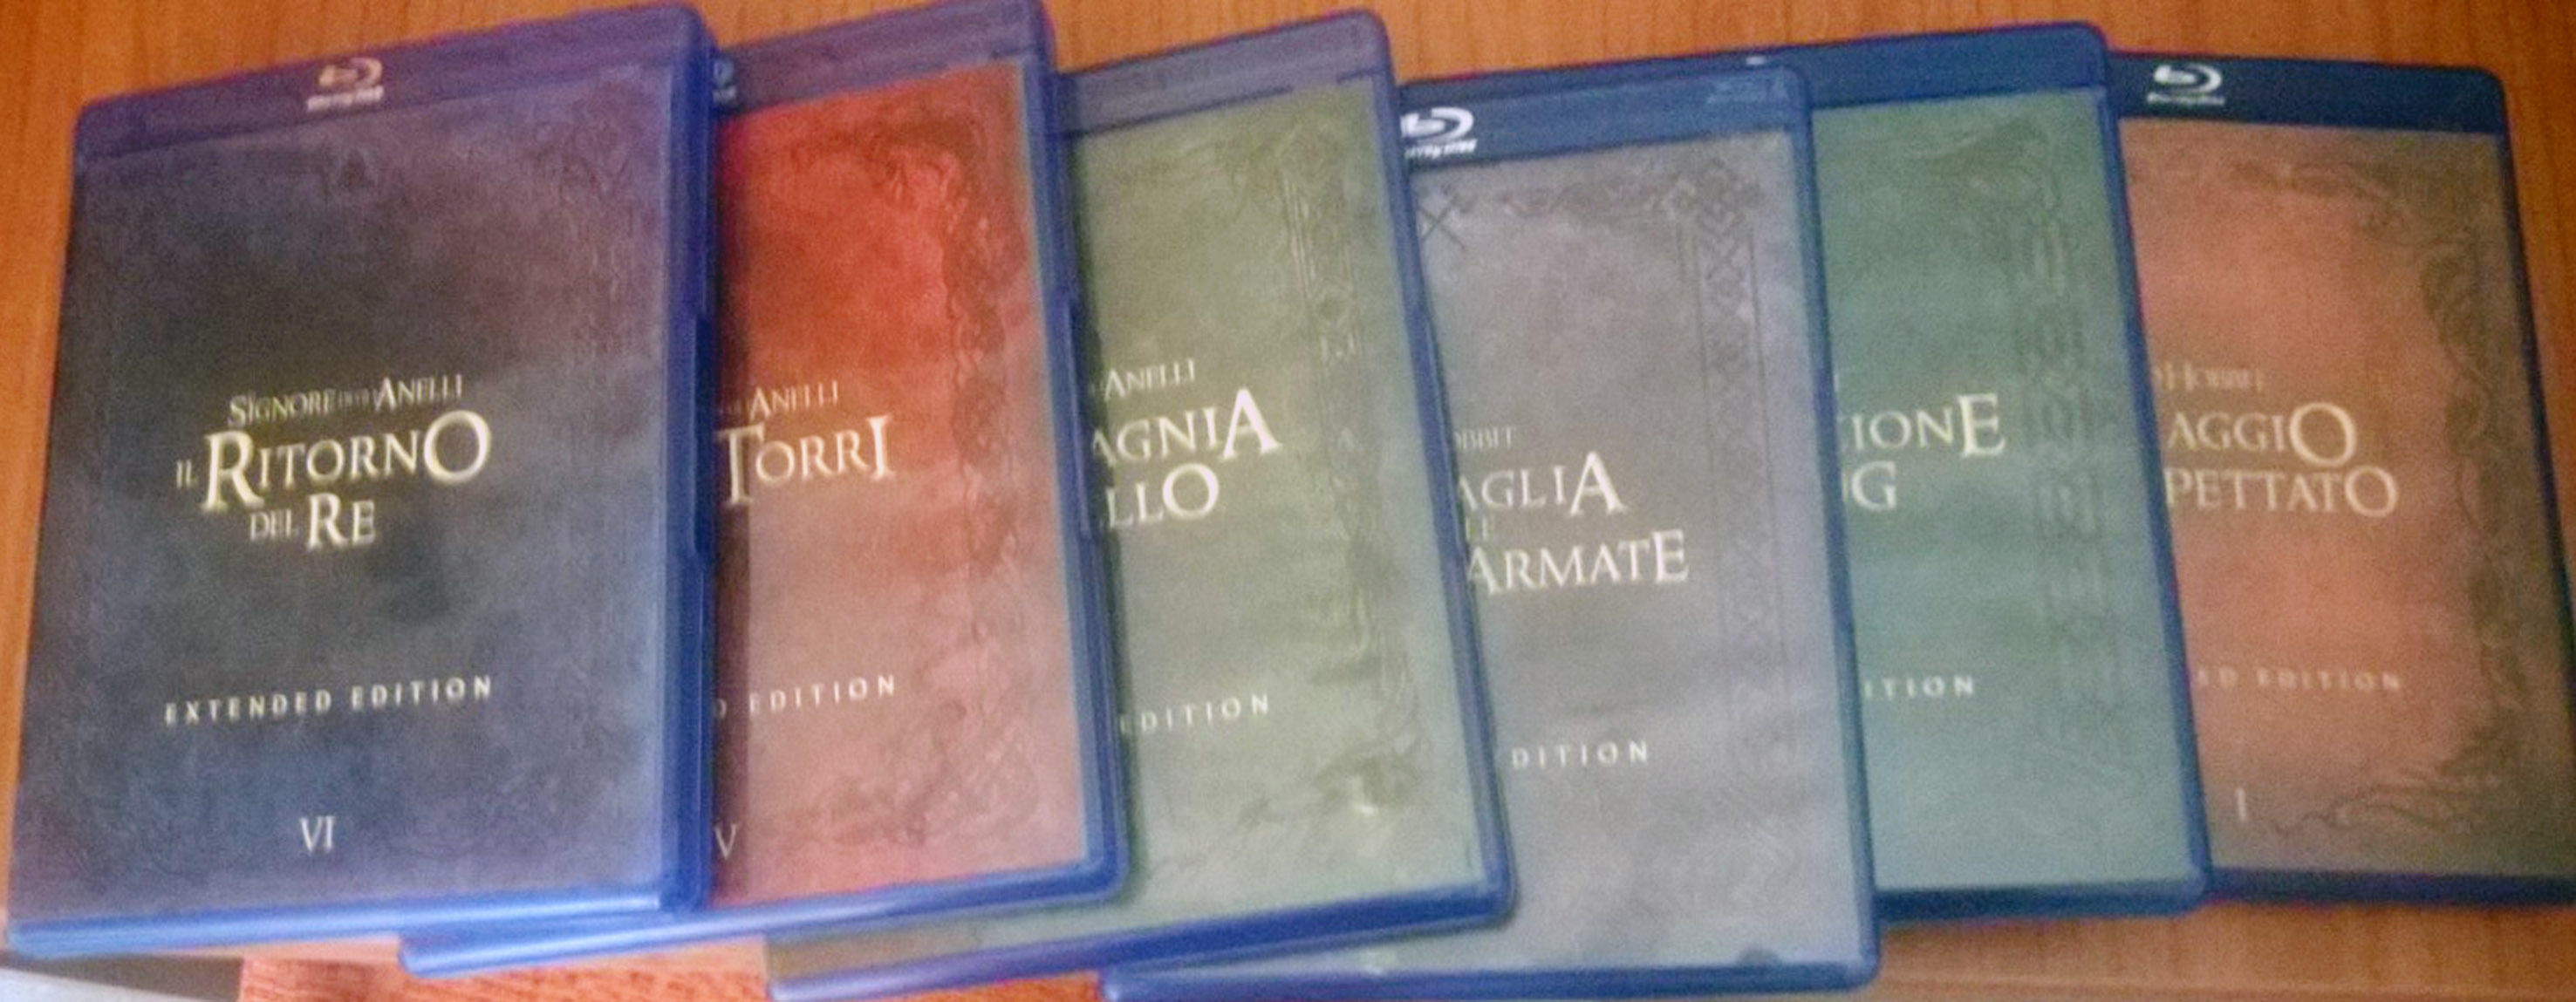 Le amaray della Middle Earth Collection